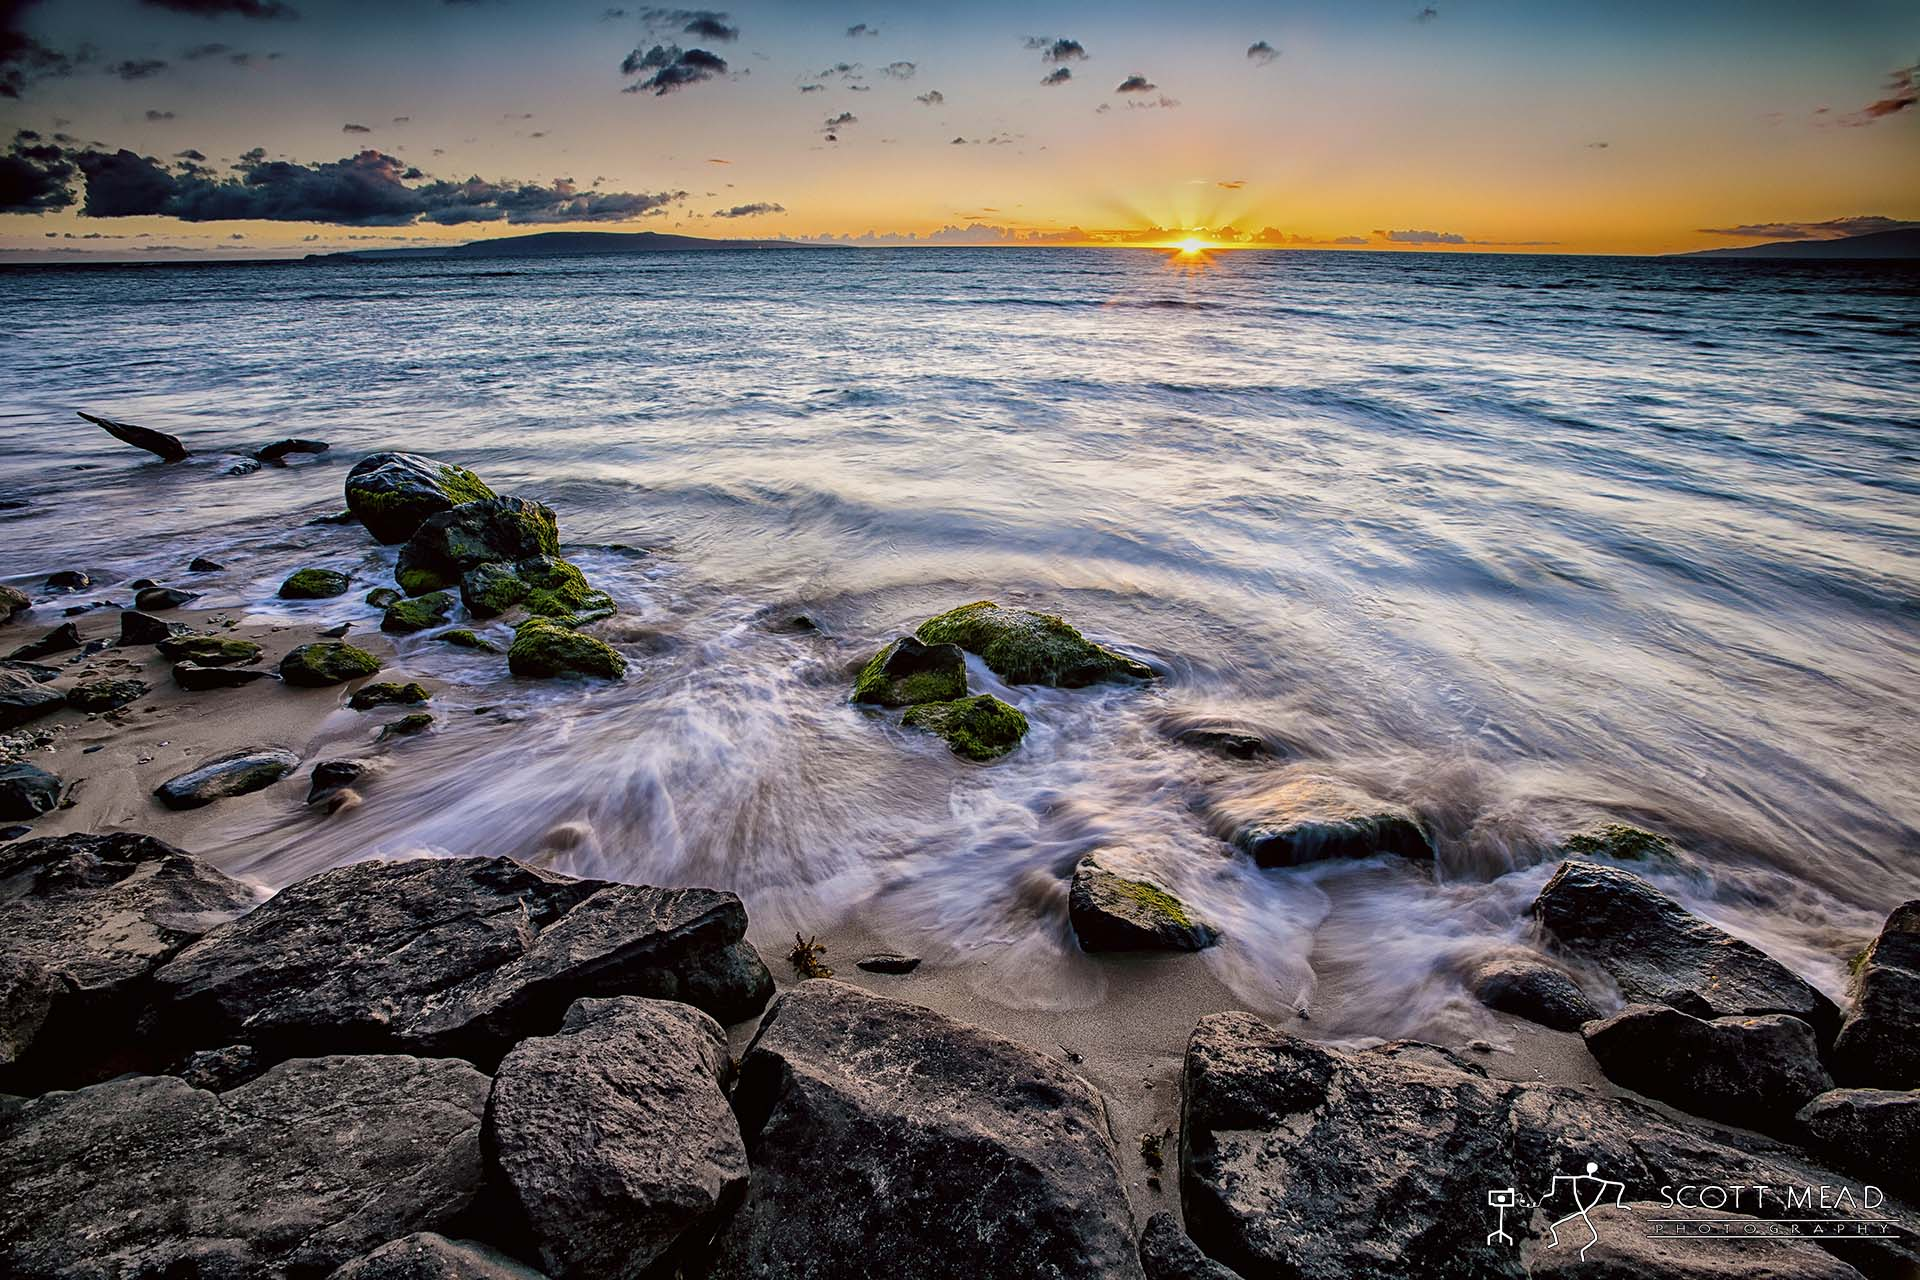 Rocky Sunset | Scott Mead Photography